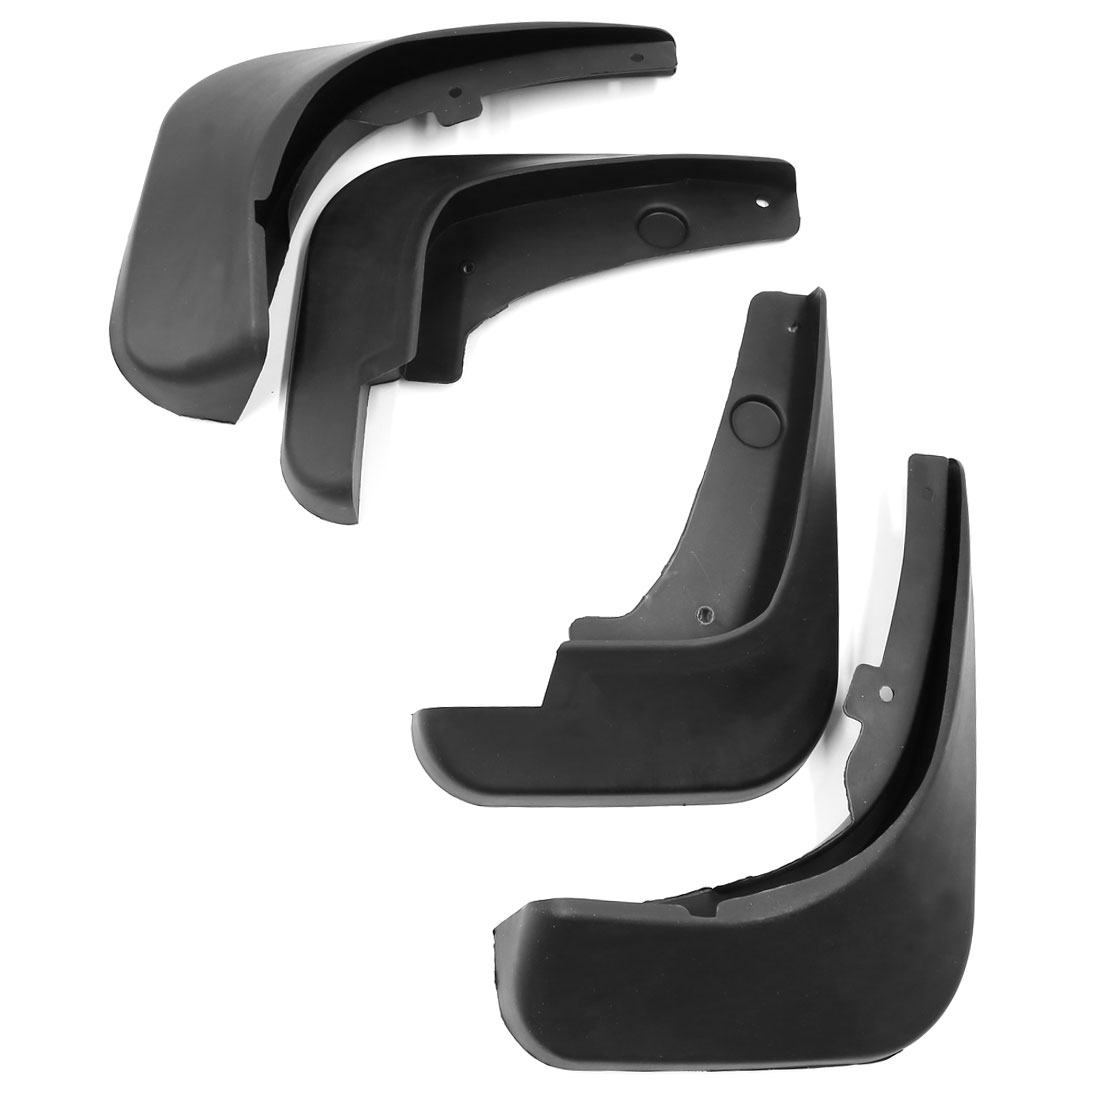 Unique Bargains 4PCS Black Plastic Mud Flaps Splash Guard Mudguard Set for Chevrolet Cruze